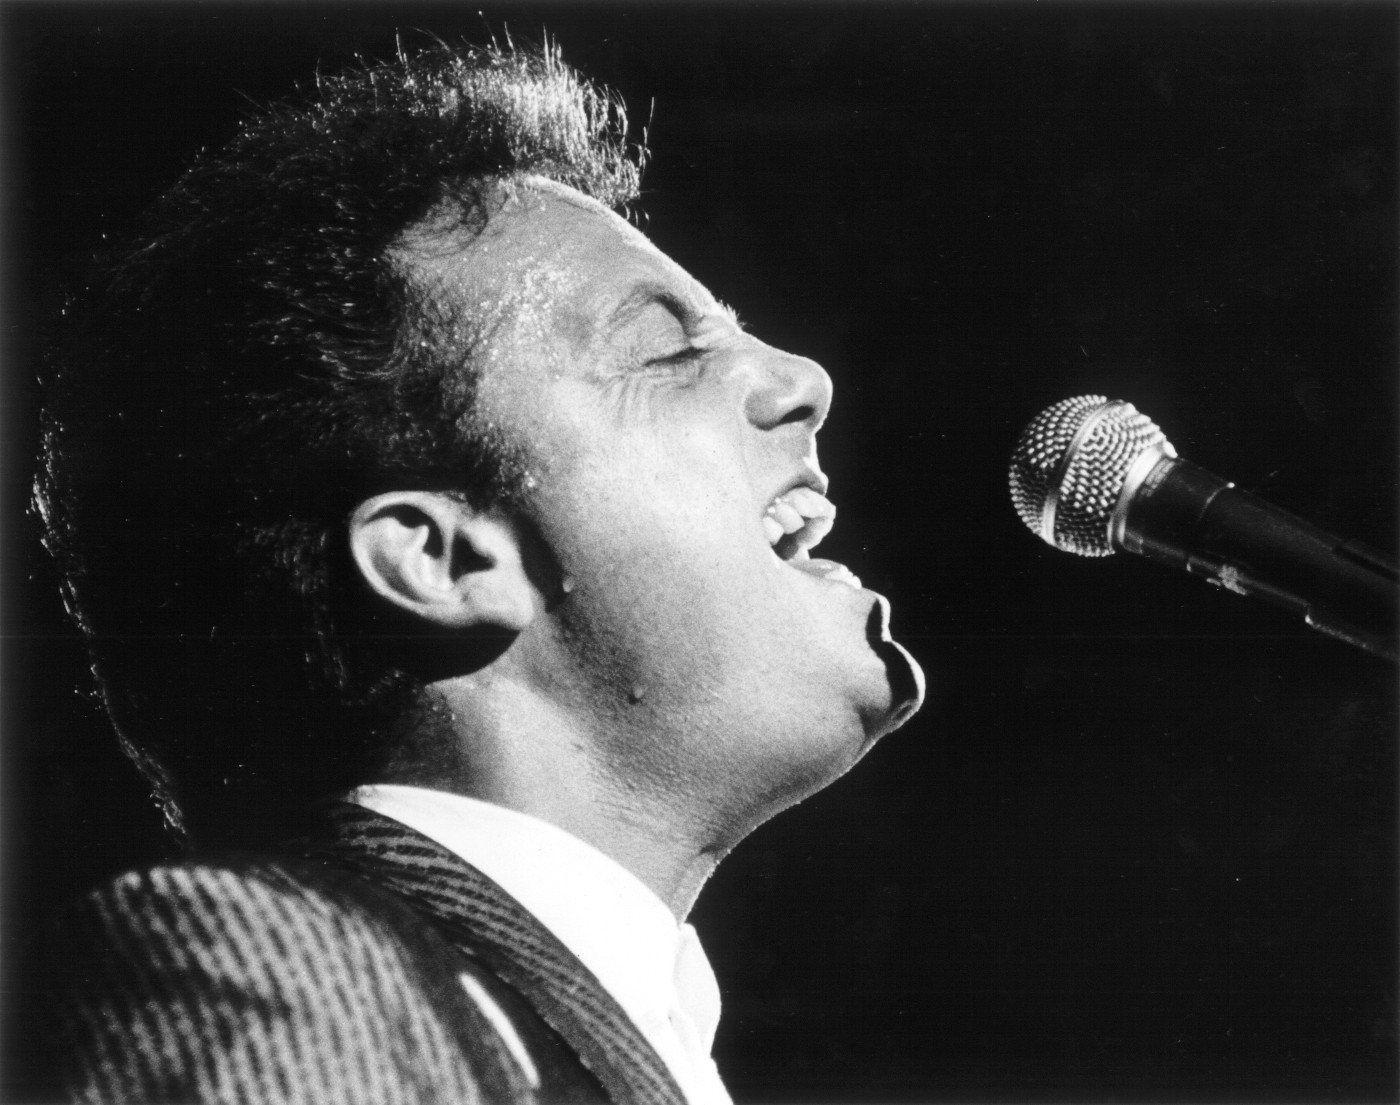 Billy Joel Piano Man Billy Joel Demented And Sad But Social